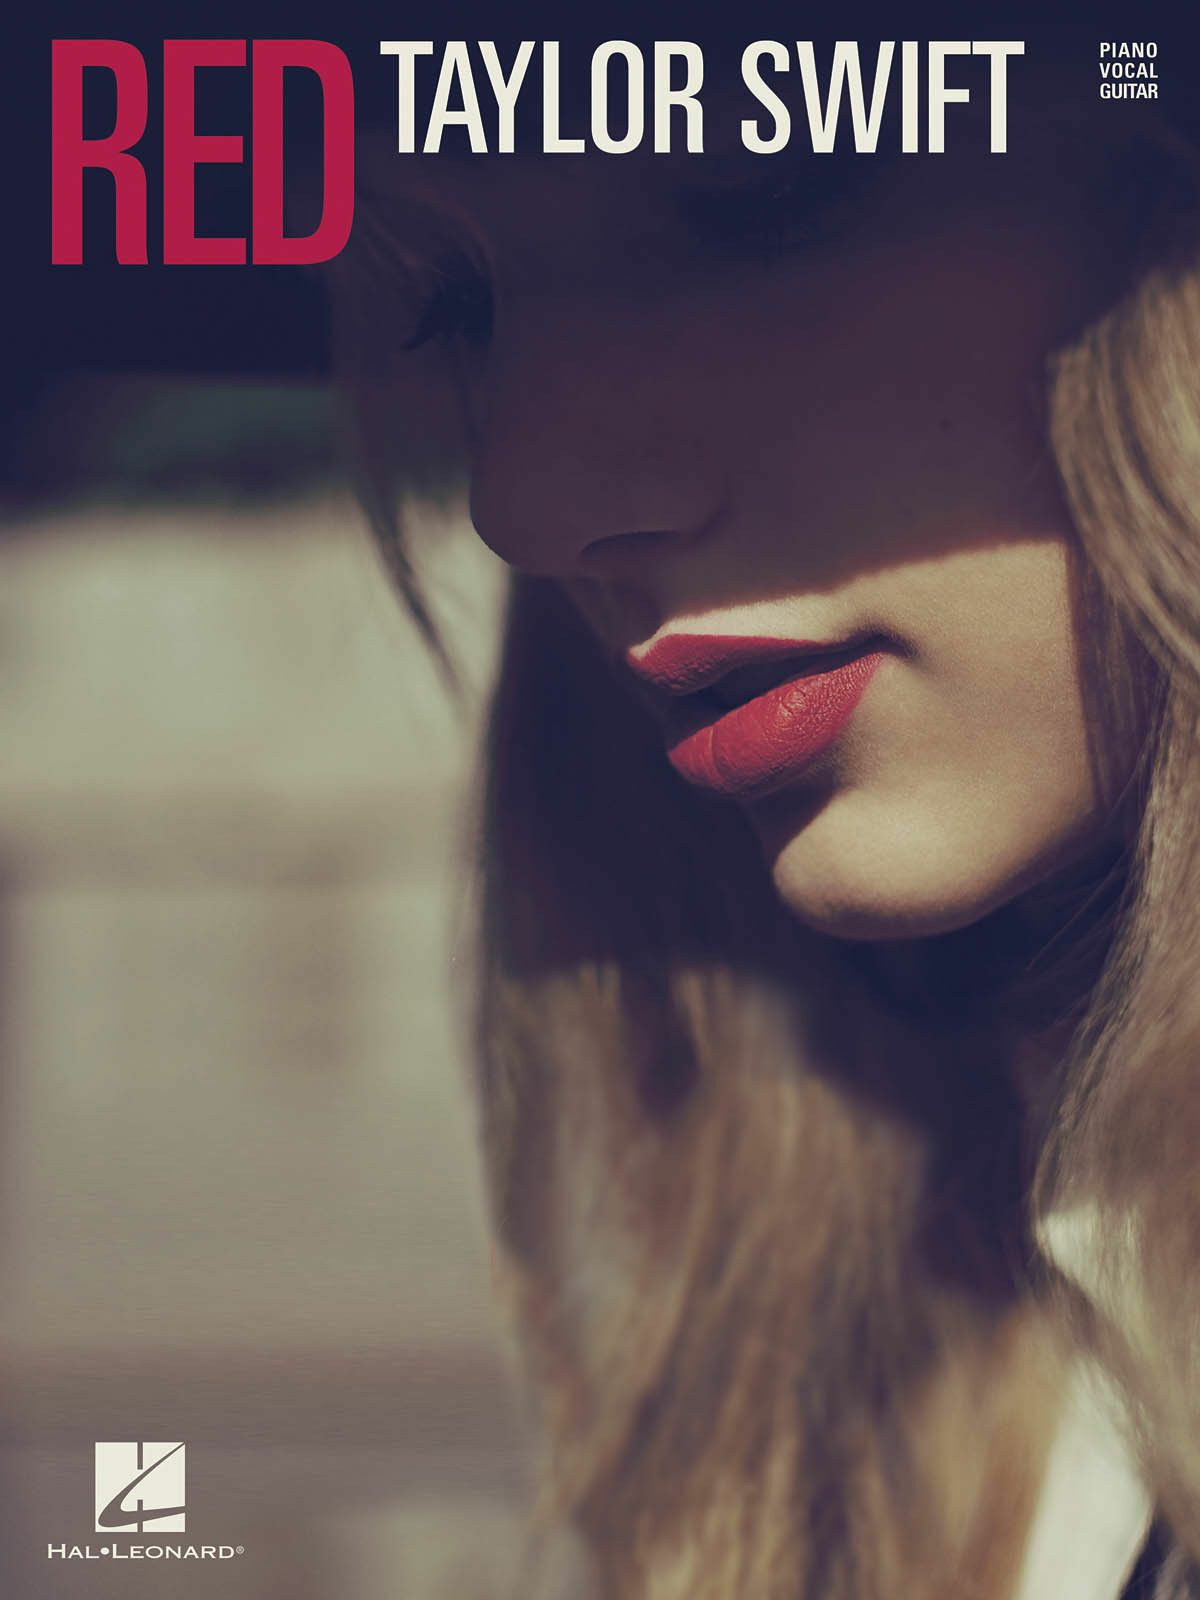 Taylor Swift Red Pianovocalguitar Pvg Songbook 1500 Picclick